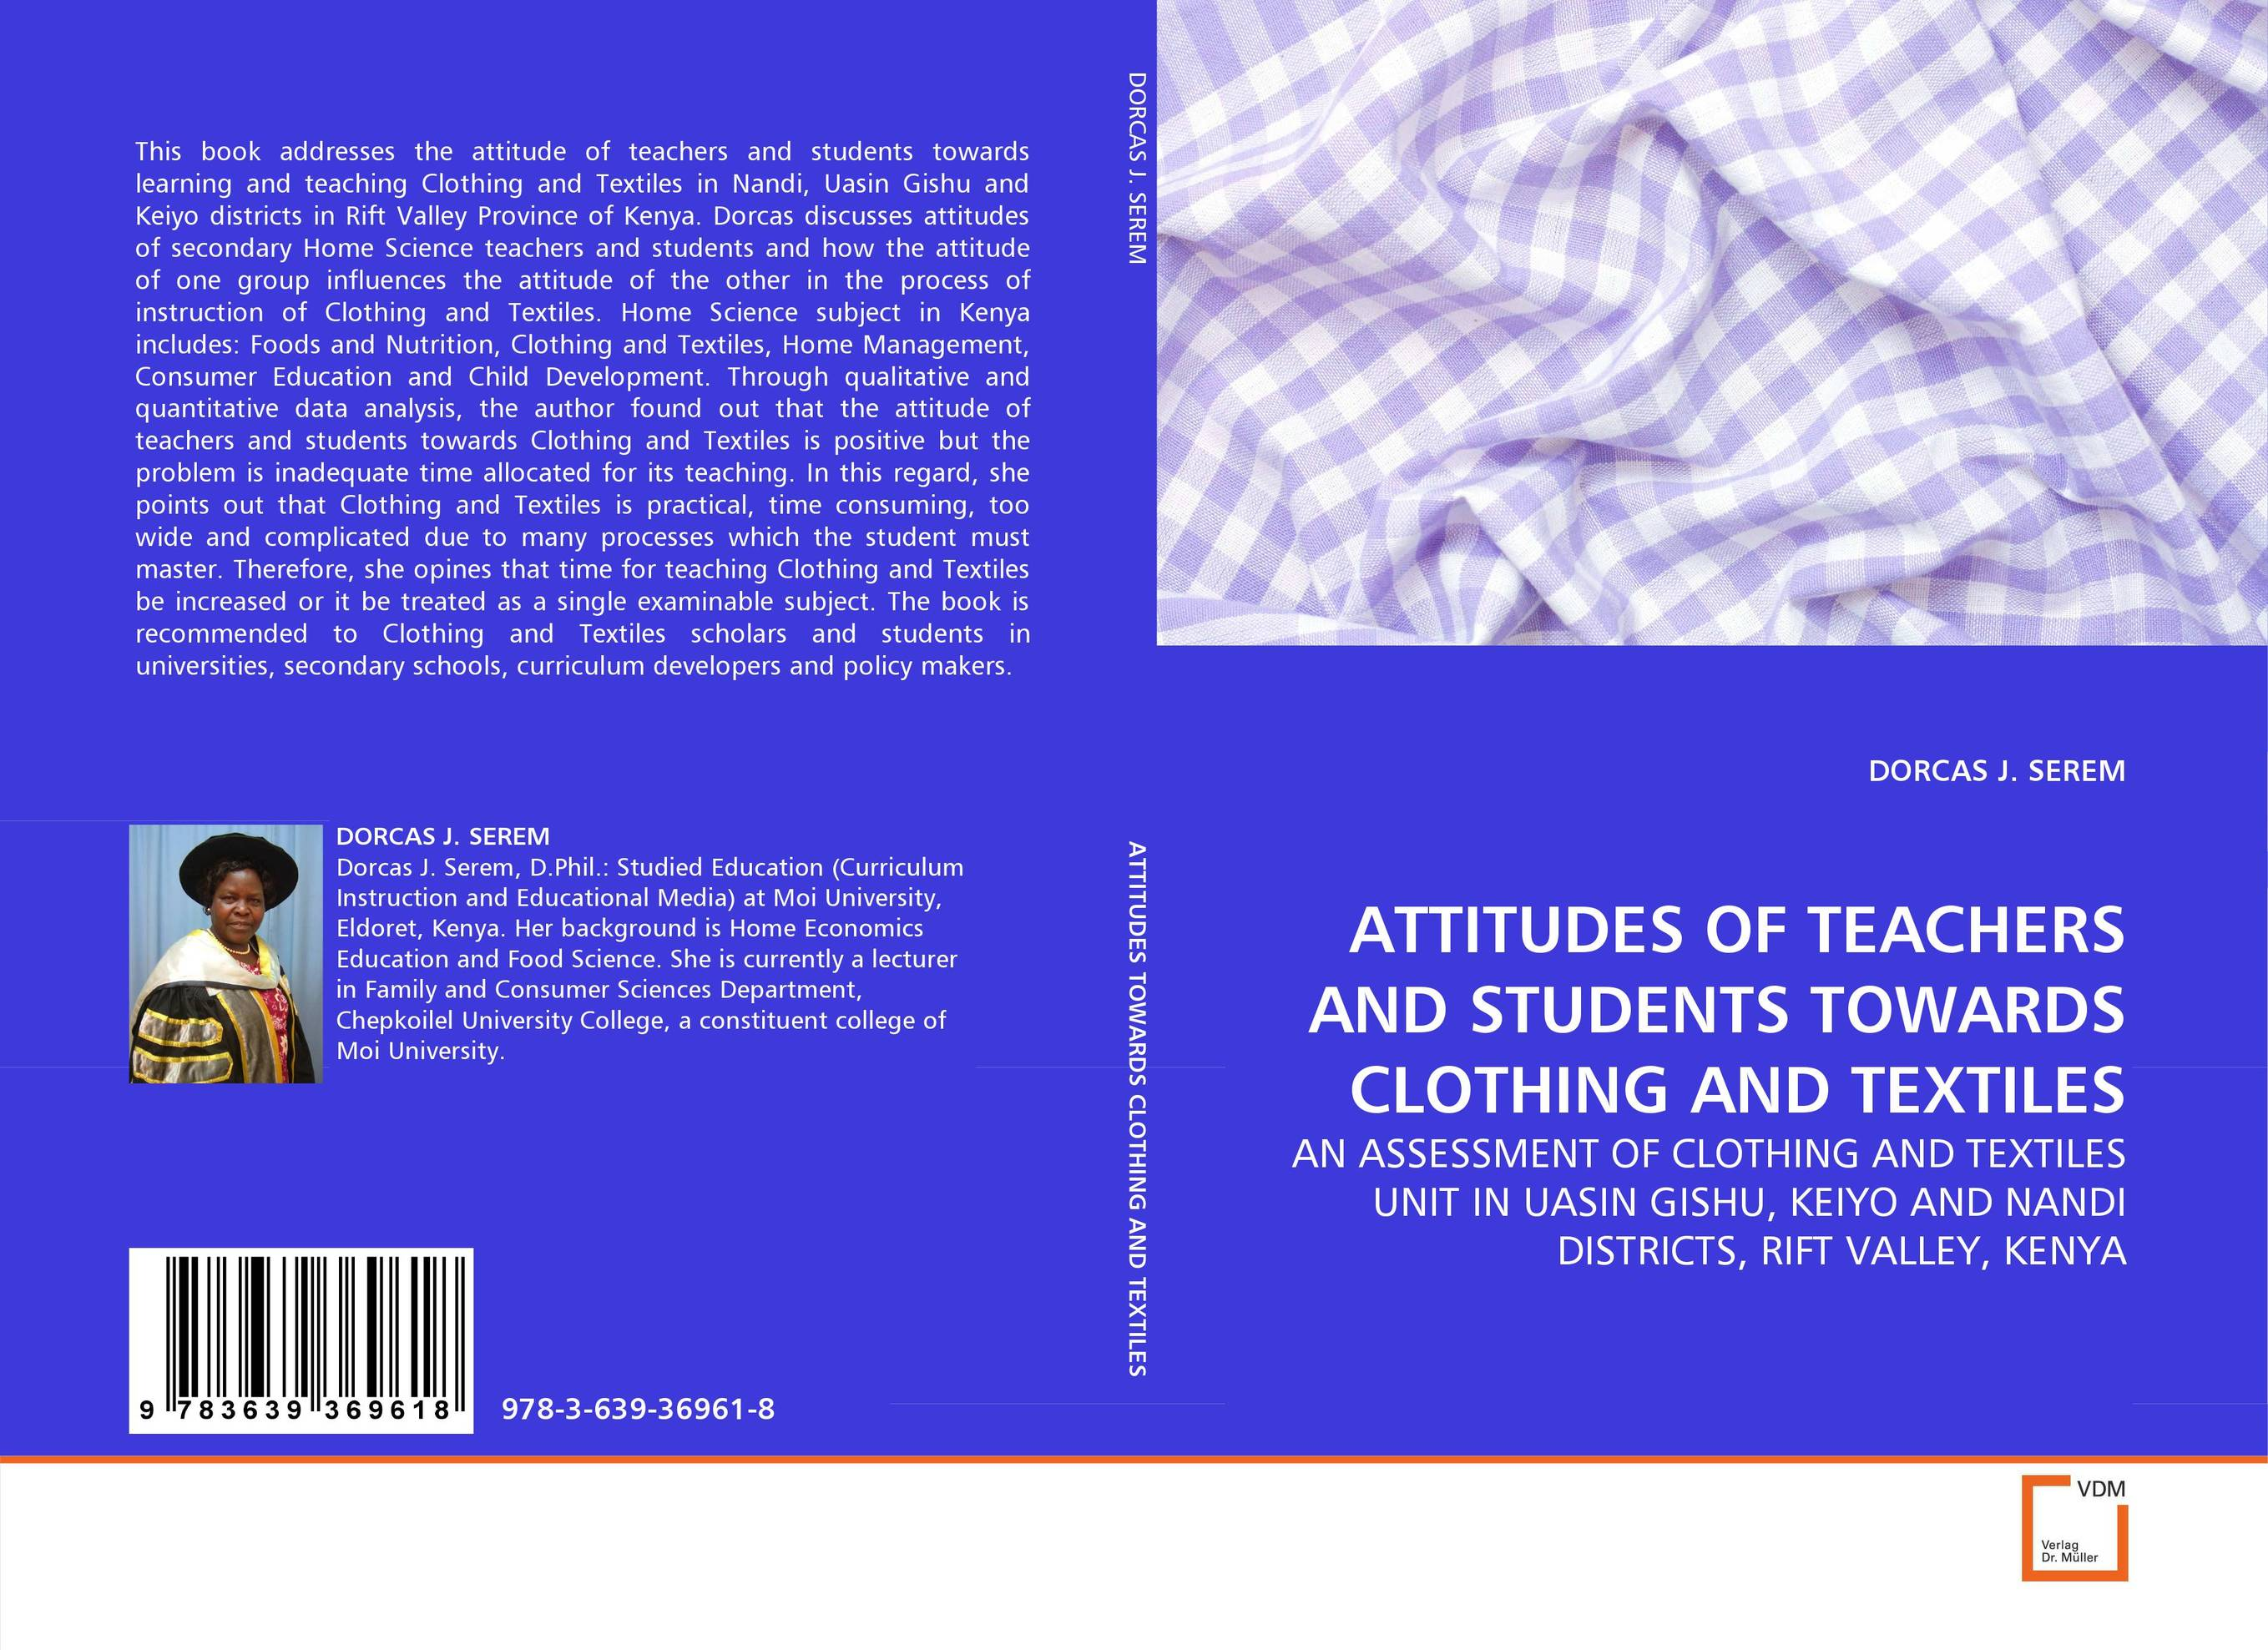 ATTITUDES OF TEACHERS AND STUDENTS TOWARDS CLOTHING AND TEXTILES textiles and dress of gujarat